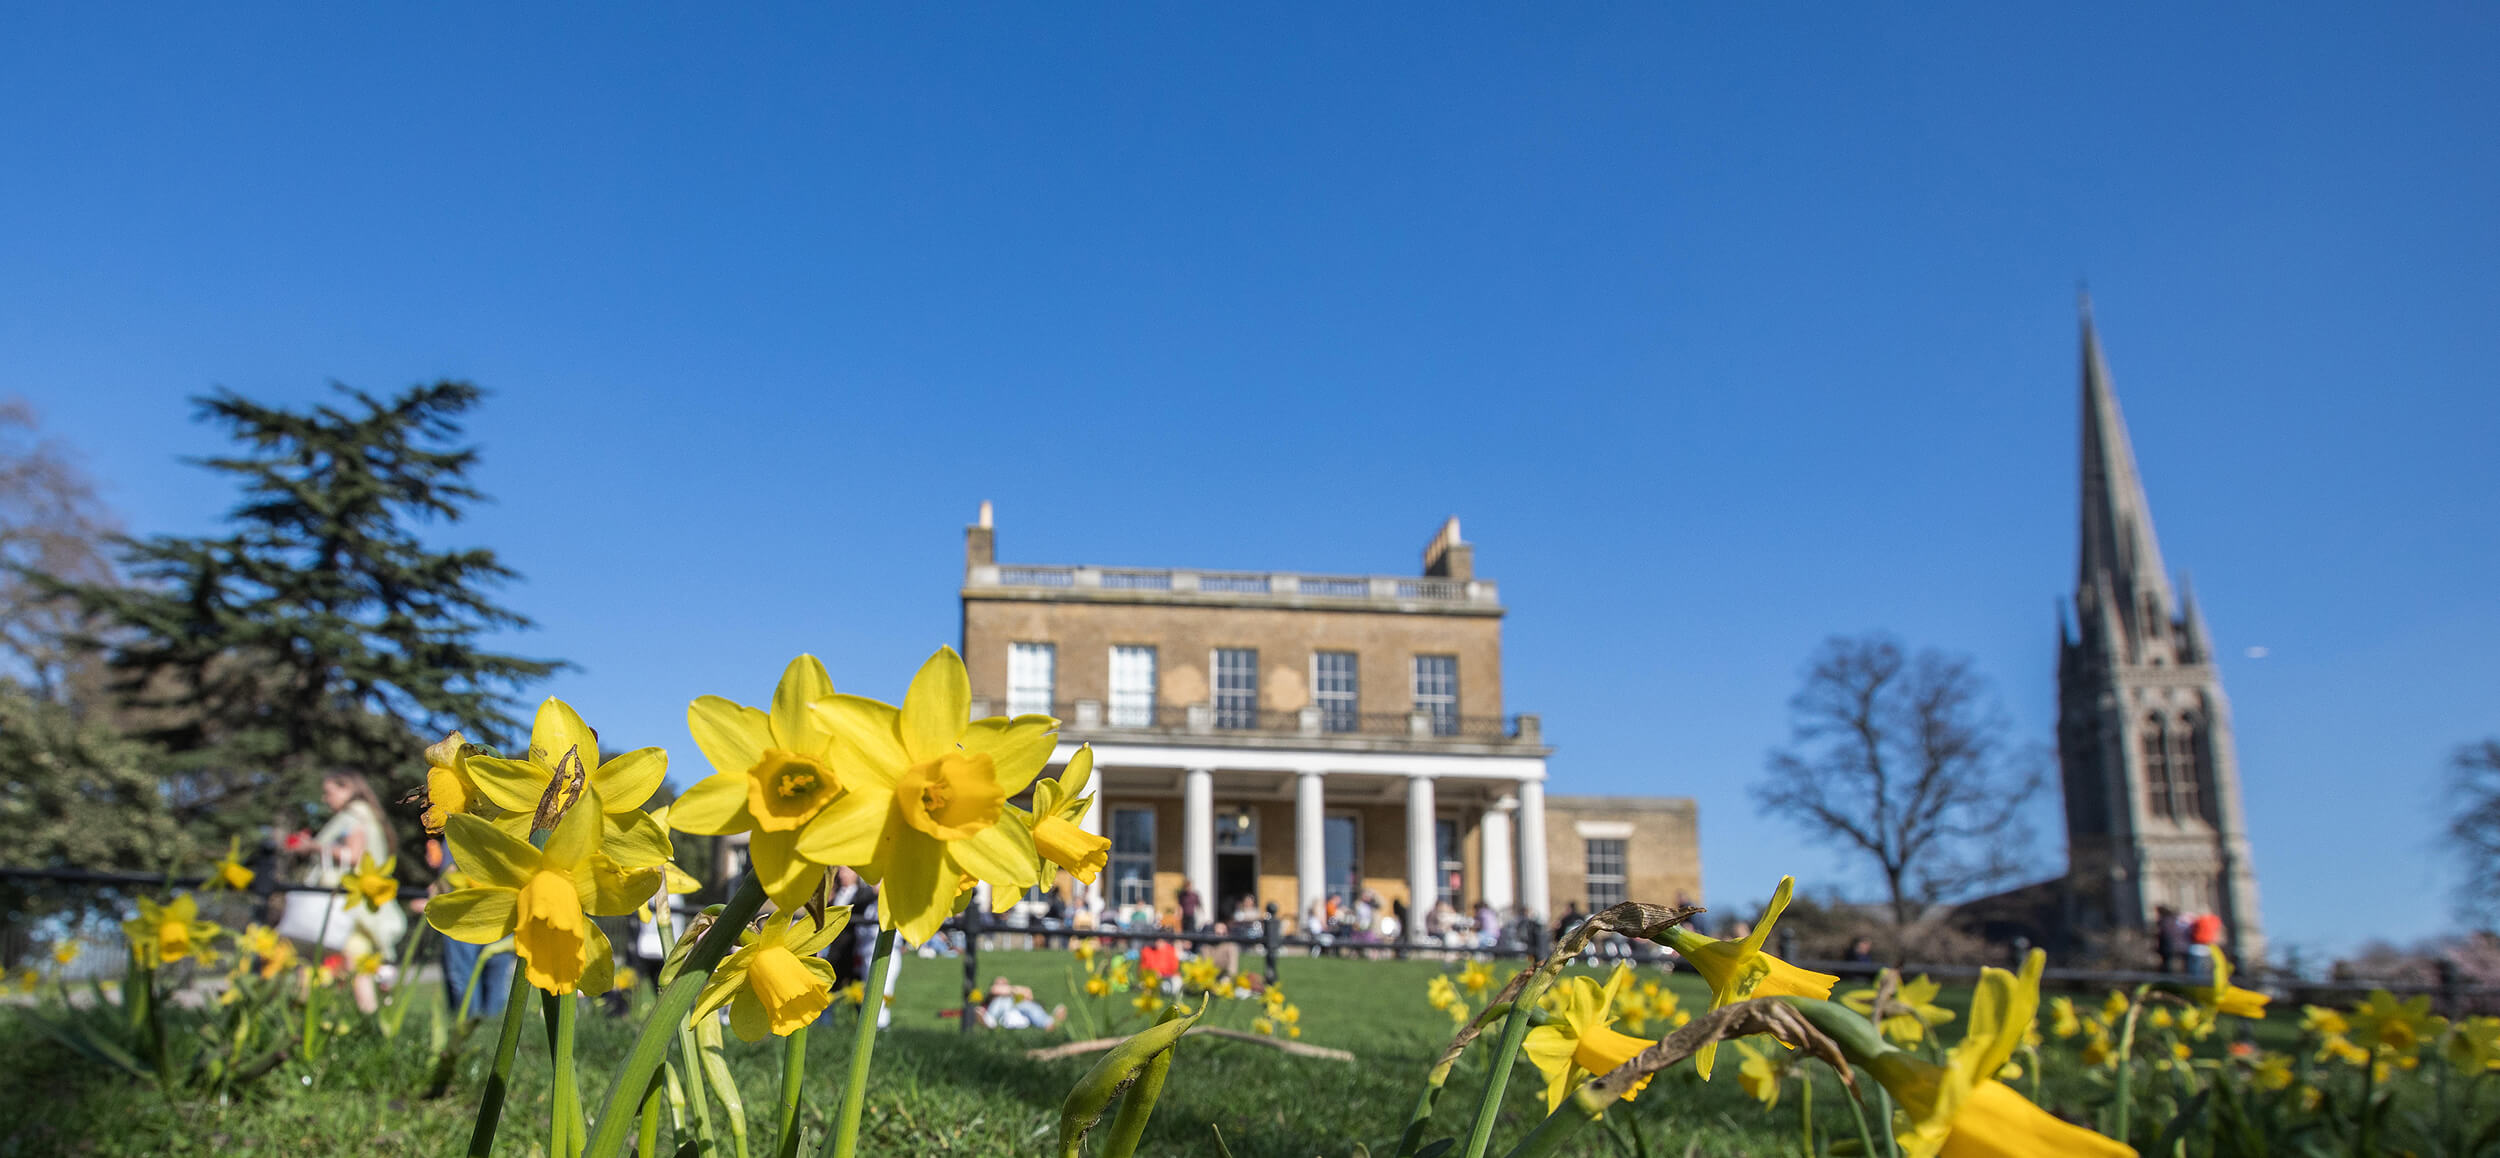 Photo of local landmark - Clissold House - with blue sky and daffodils